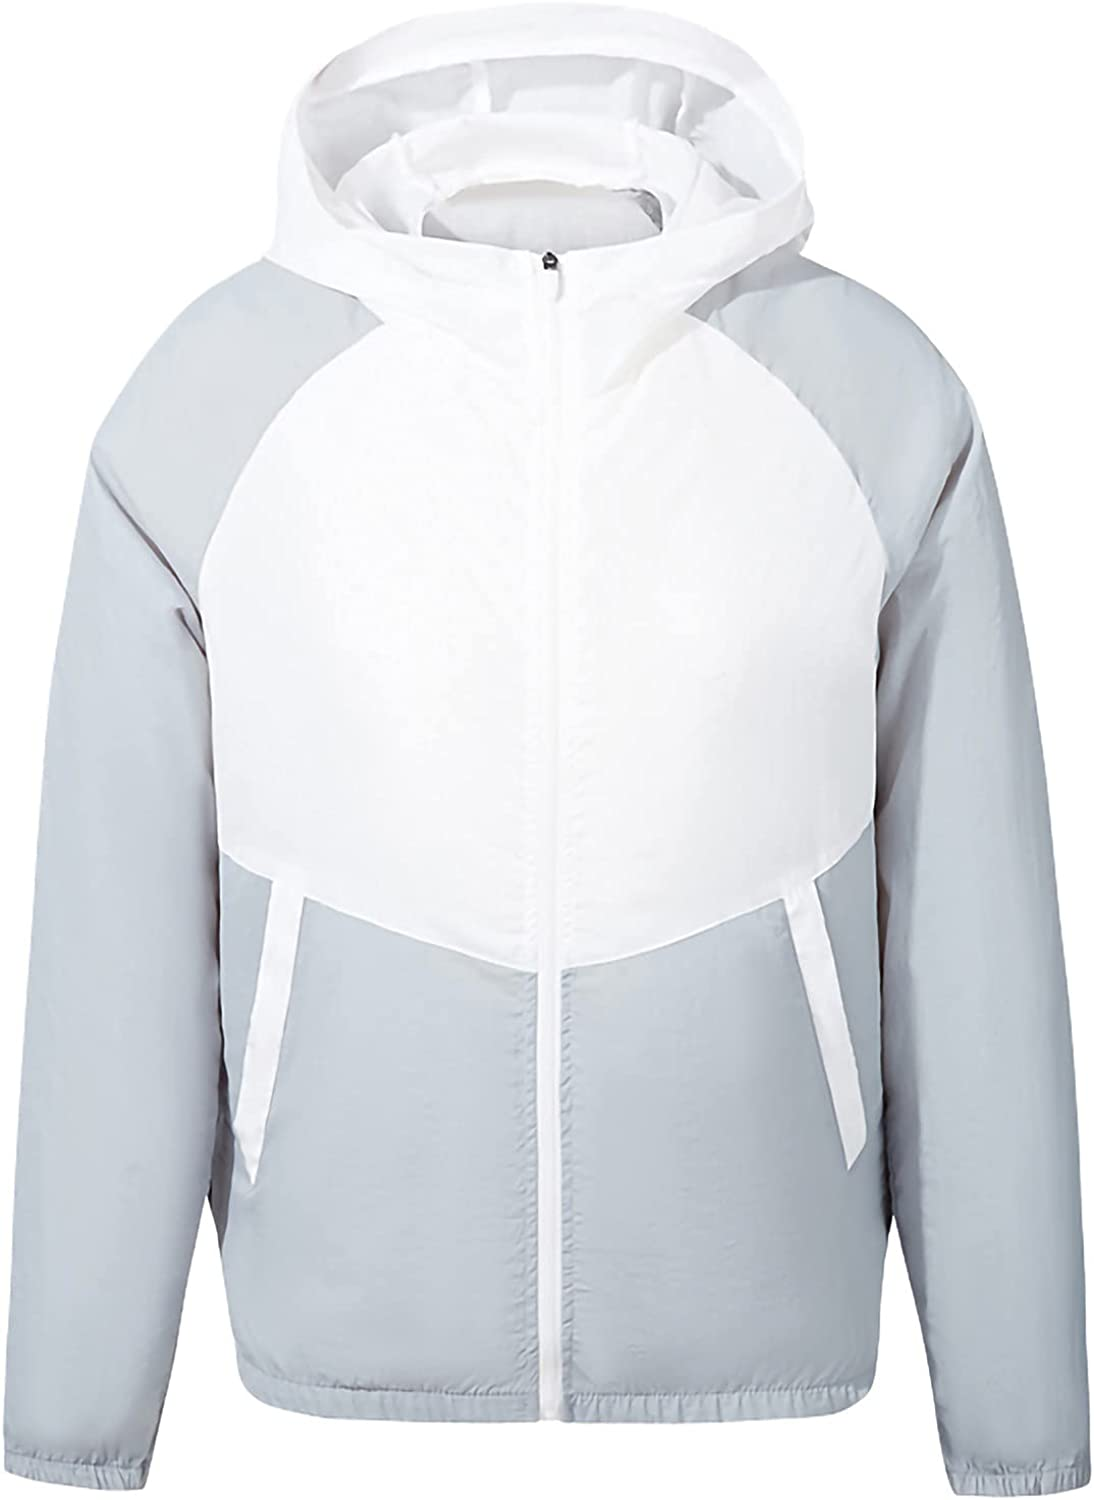 GOODTRADE8 Cardigan Sweaters Women and Men's Cooling Fan Clothing and Air Conditioned Coat Outdoor Work